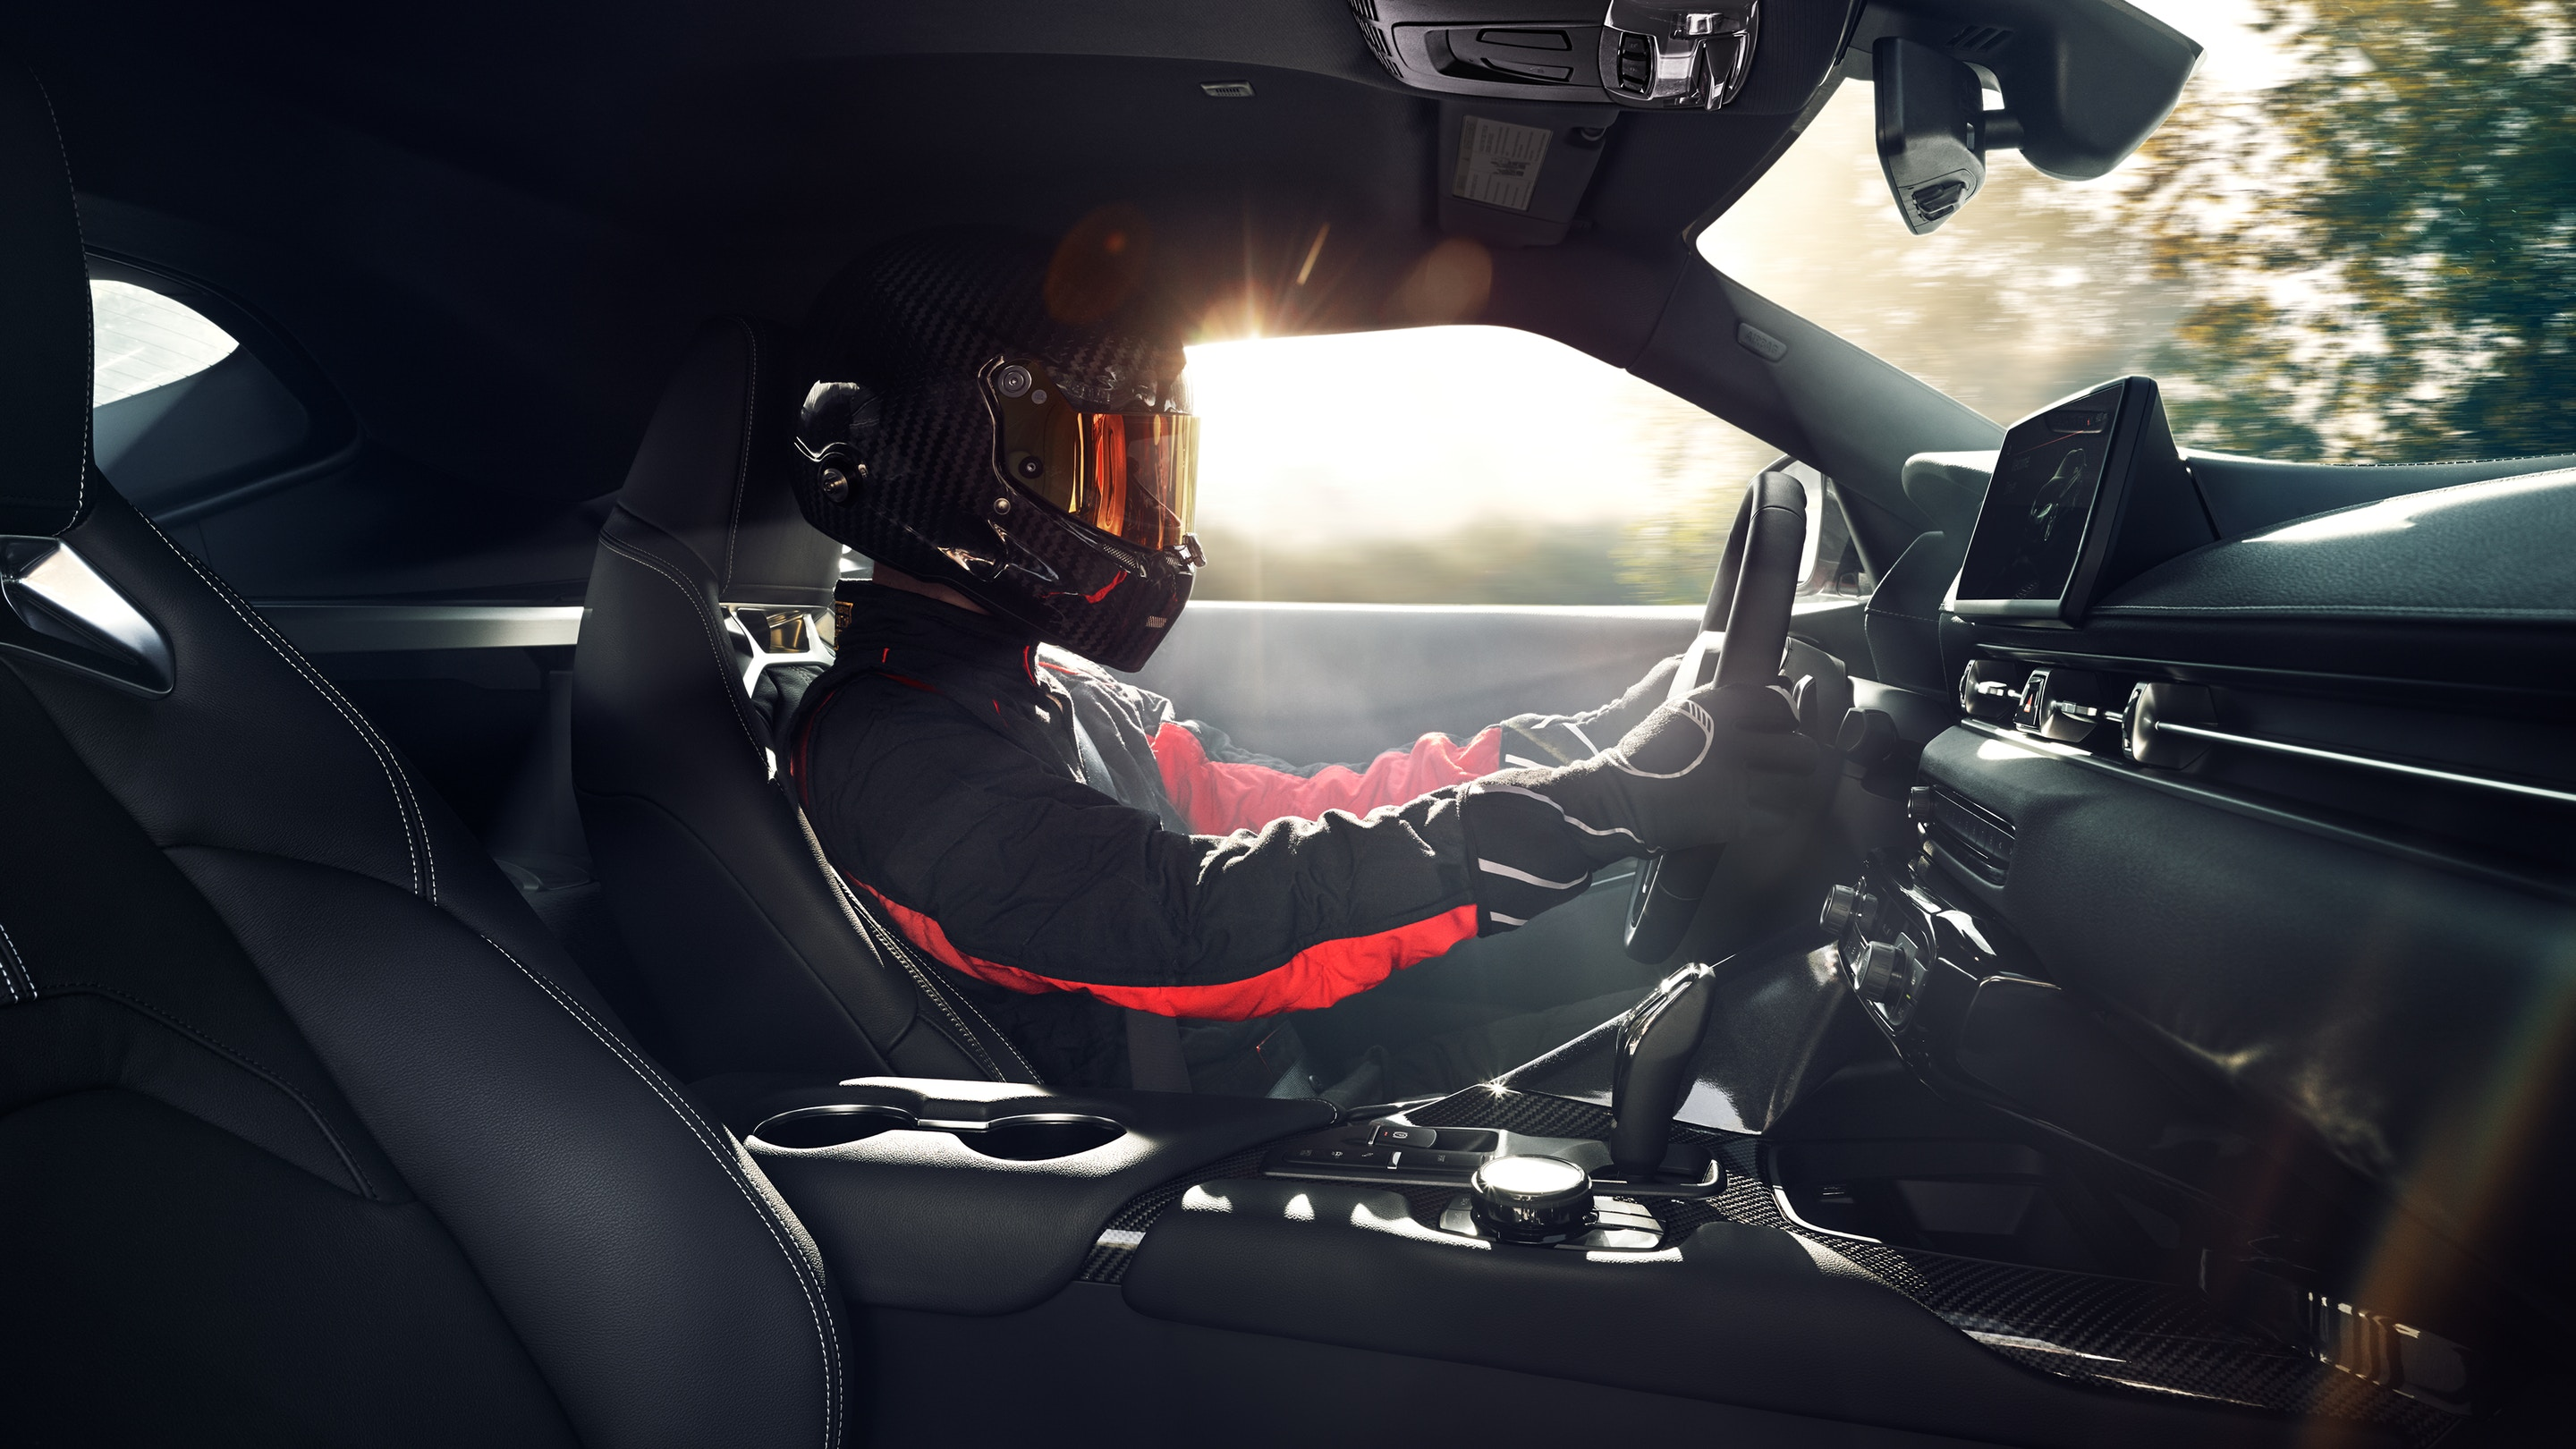 Sporty Interior of the 2020 Supra